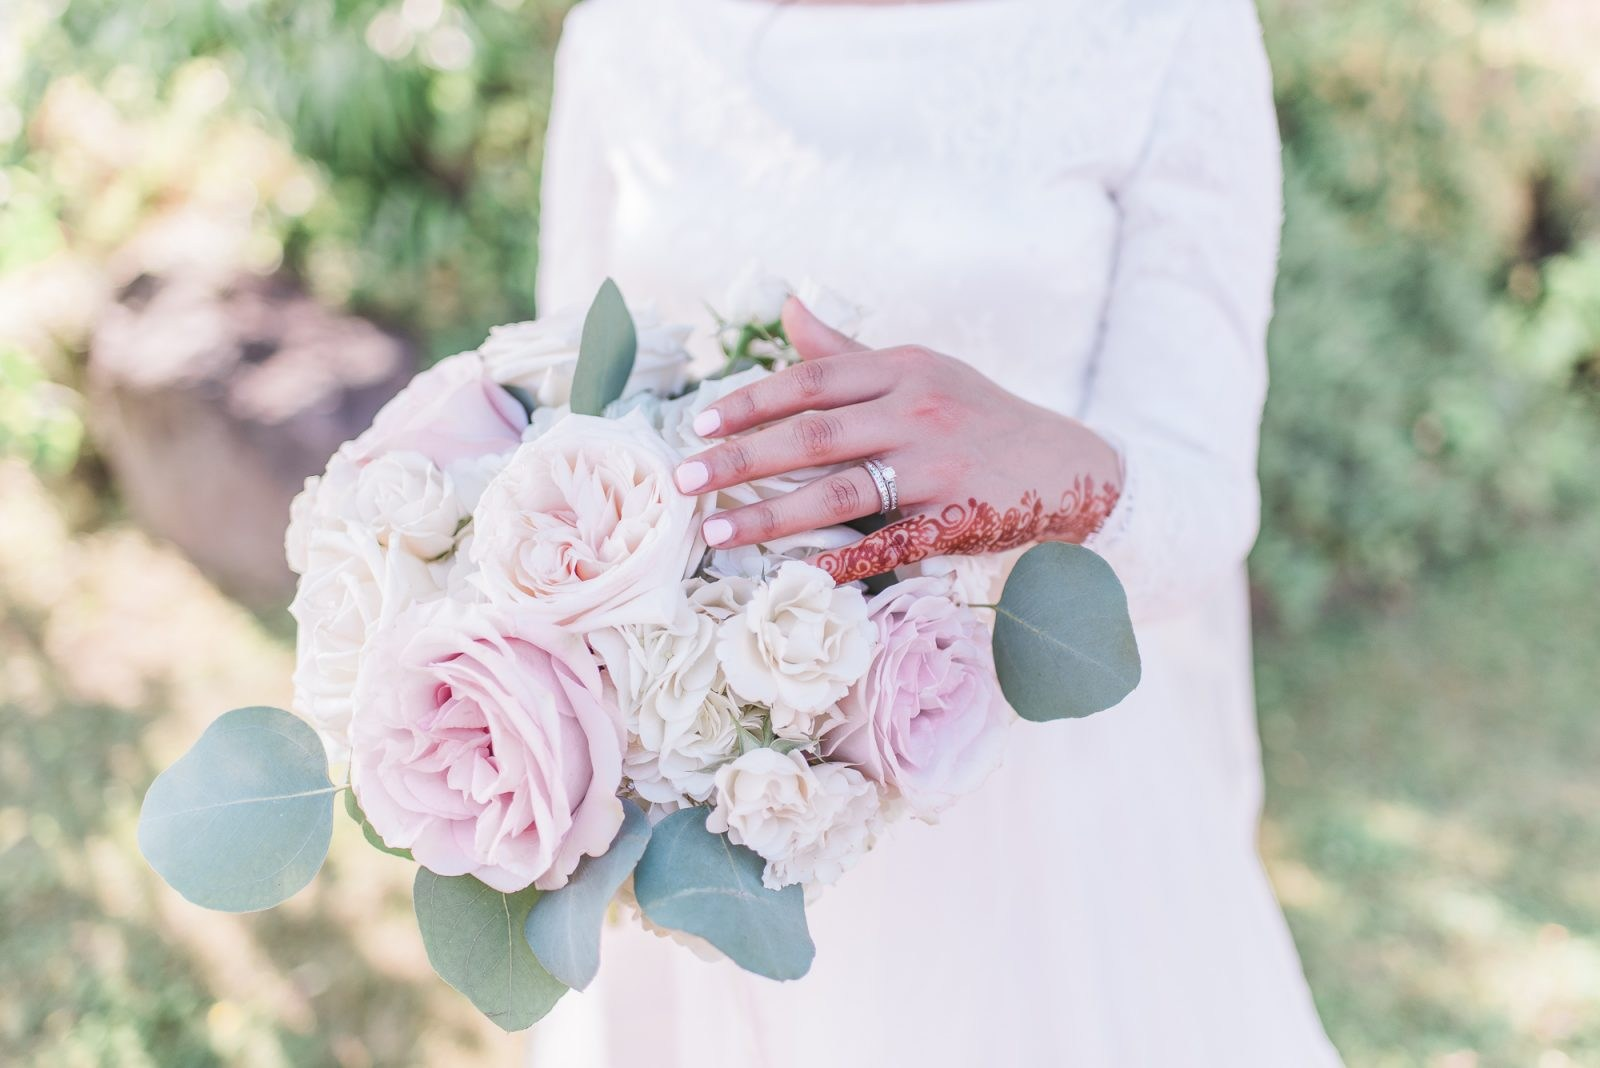 luxury wedding at orchard view ottawa - dusty pink bouquet and henna bride